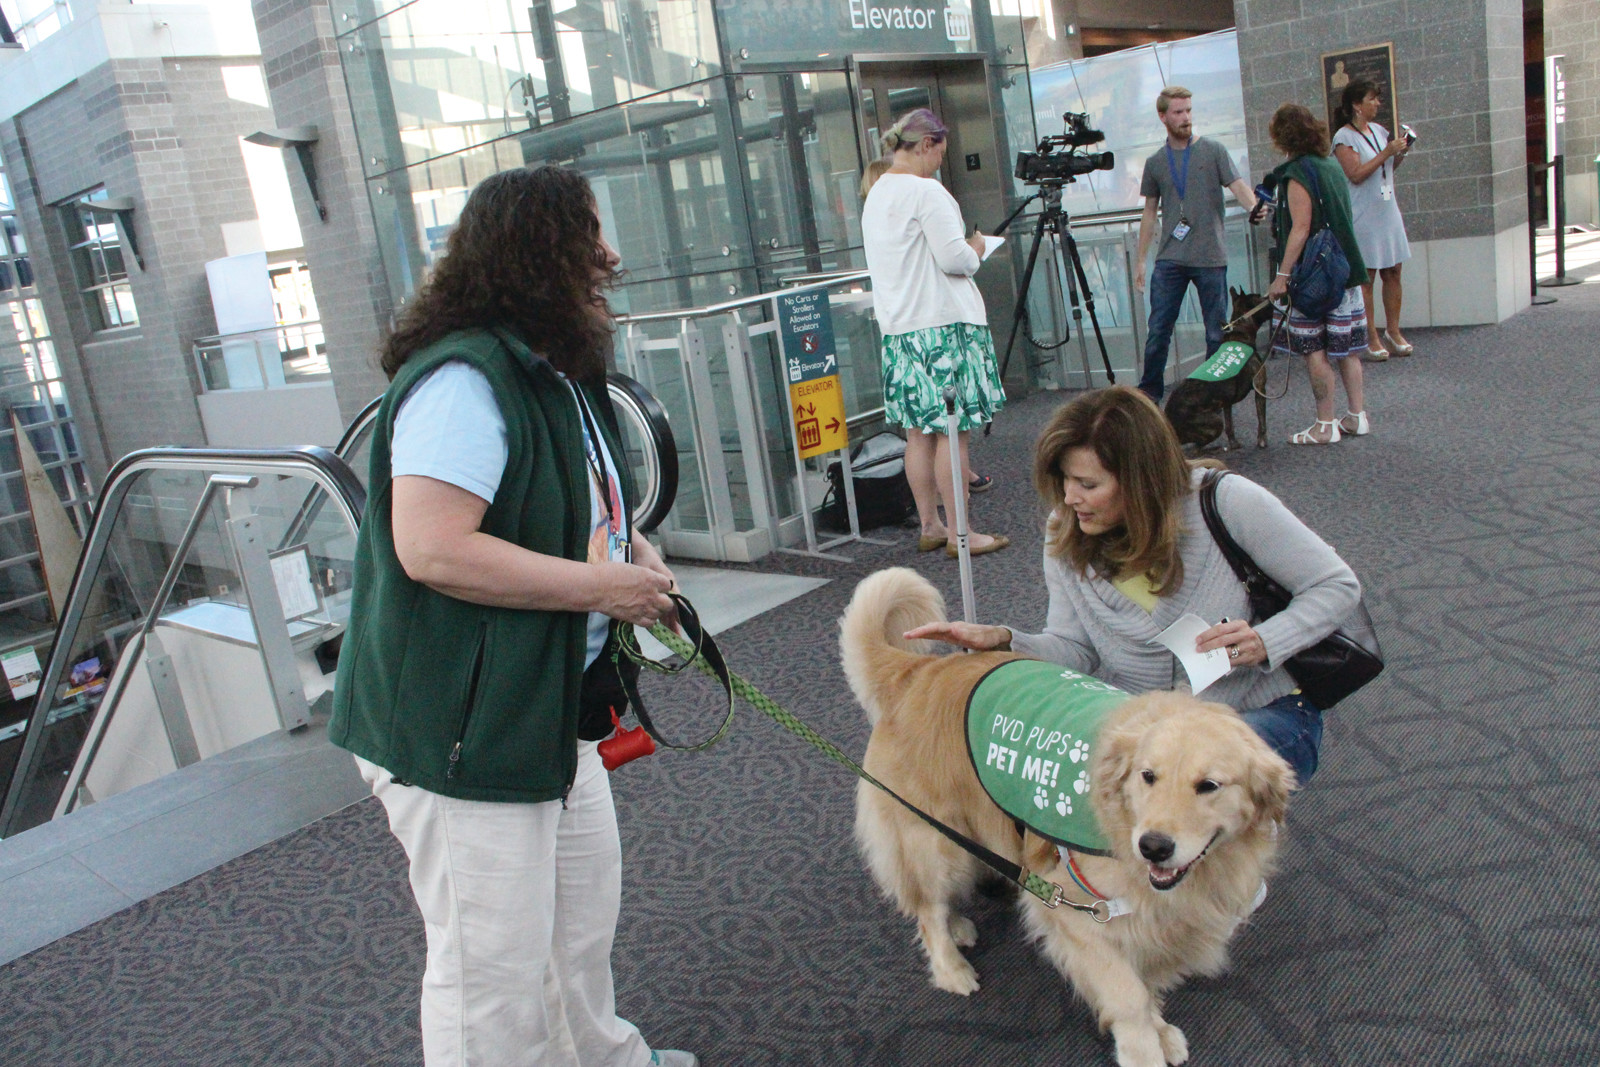 Pet Me: As handler Laurie Cary looks on, Golden Retriever Fenway gets a few pats from Jennifer Nelson from Austin, TX, who owns three goldens of her own.  Nelson is traveled to Rhode Island for a tech conference, and is inspired to start a similar program at the airport back at home.